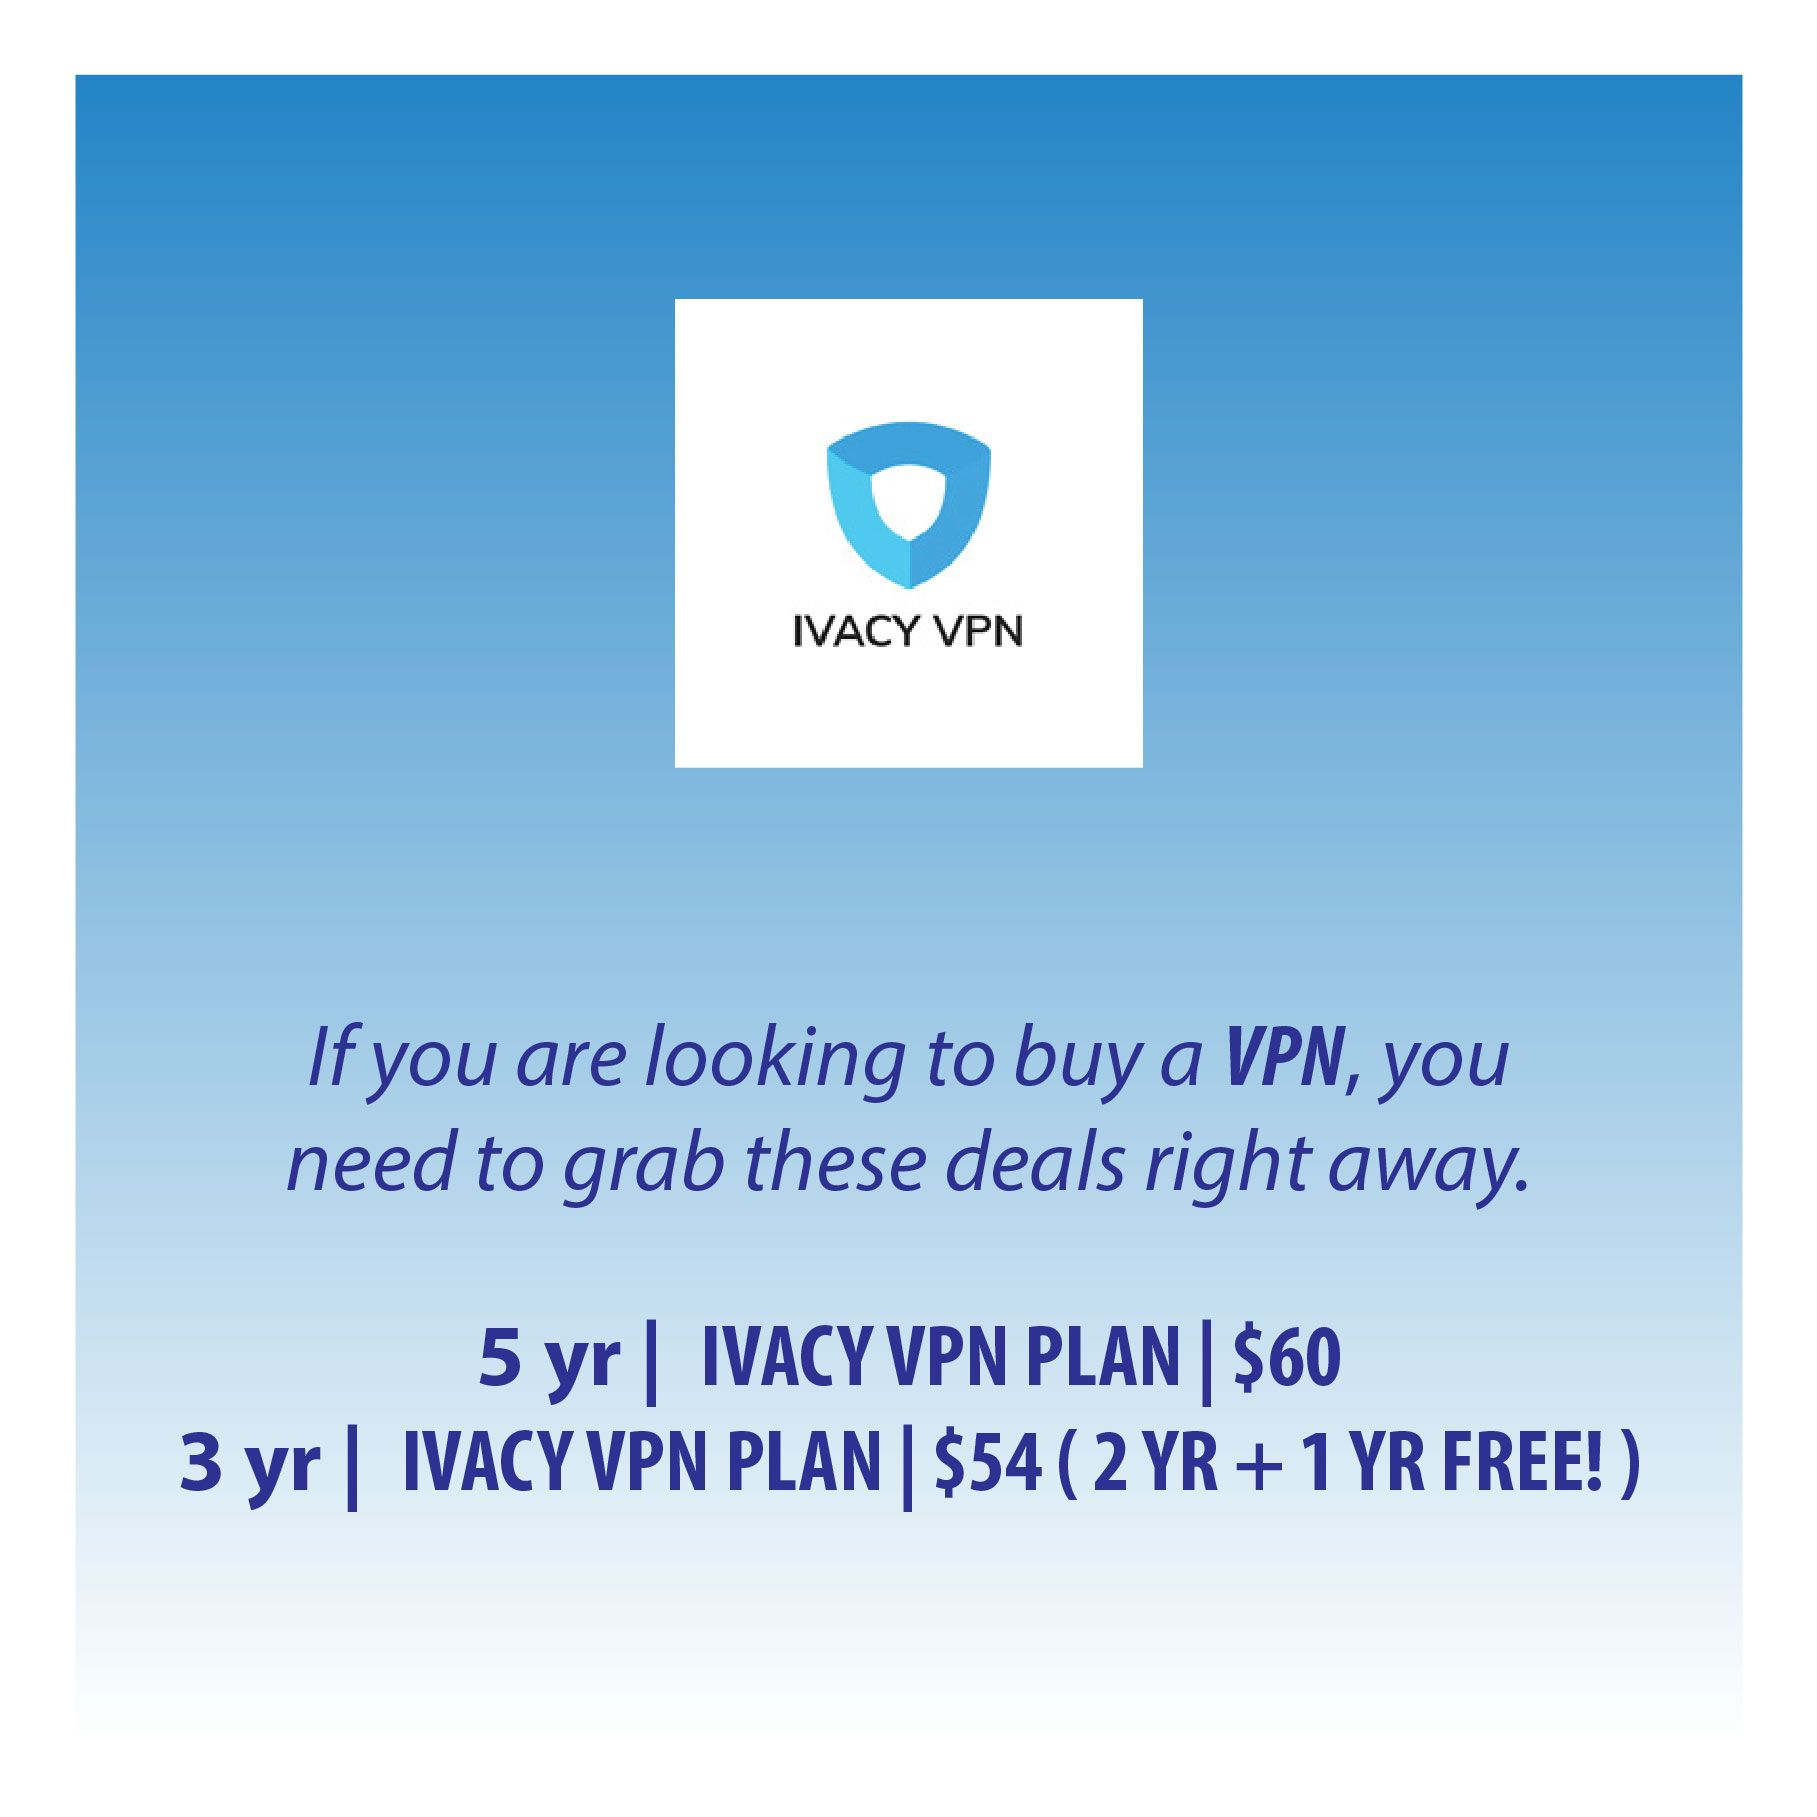 If you are looking to buy a VPN, you need to grab these